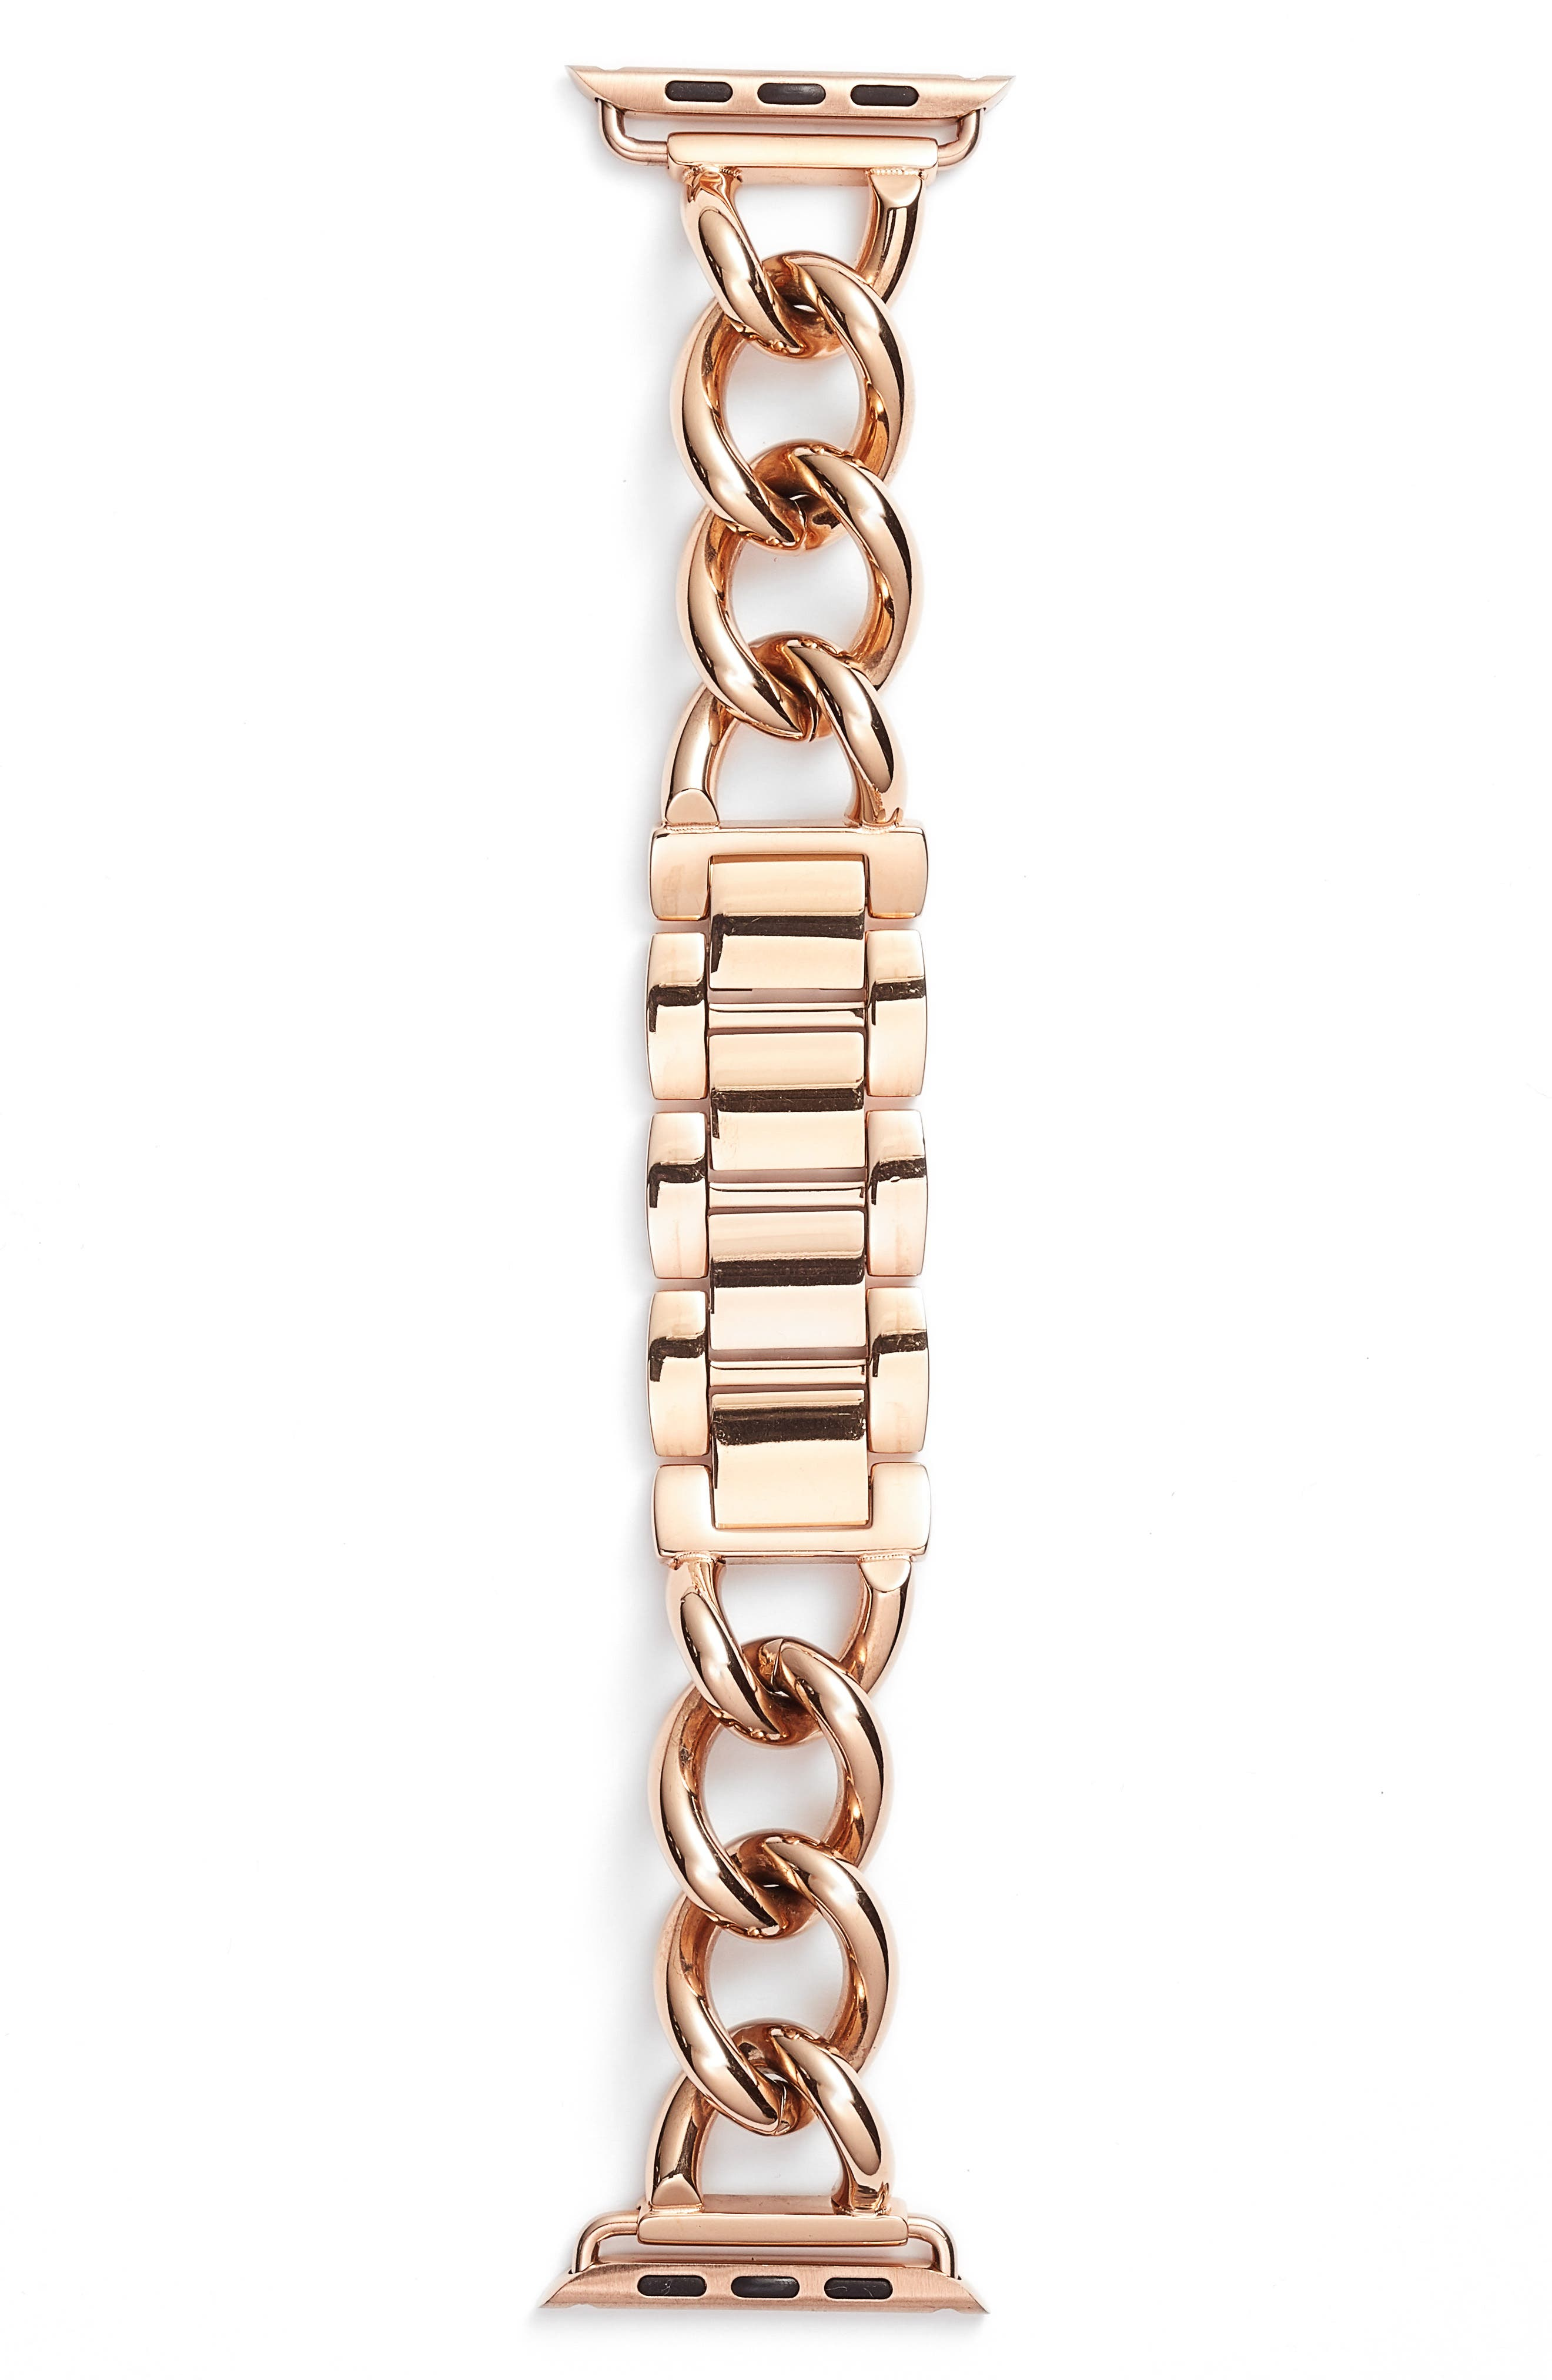 Main Image - Bezels & Bytes Chunky Curb Chain Apple Watch Band, 42mm